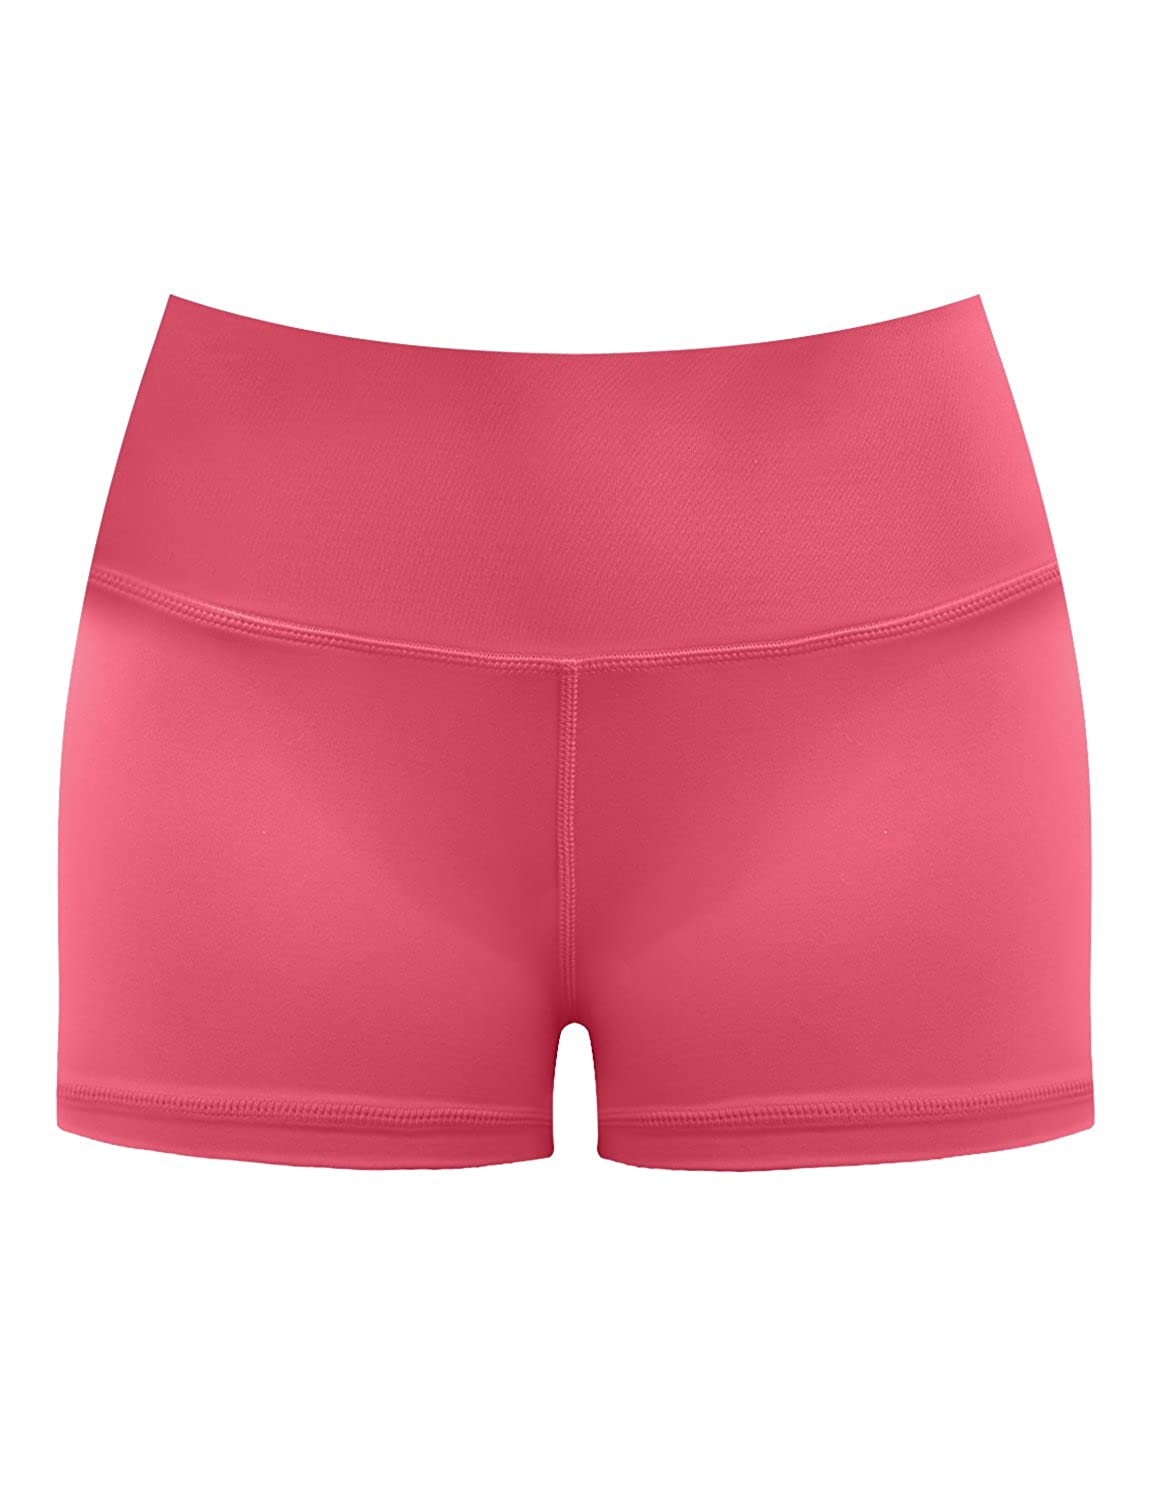 Bwhb003 pinkcoral& xFF08;2.5 inseam) BUBBLELIME 2.5   4  Inseam Out Pocket Yoga Shorts Running Shorts Active